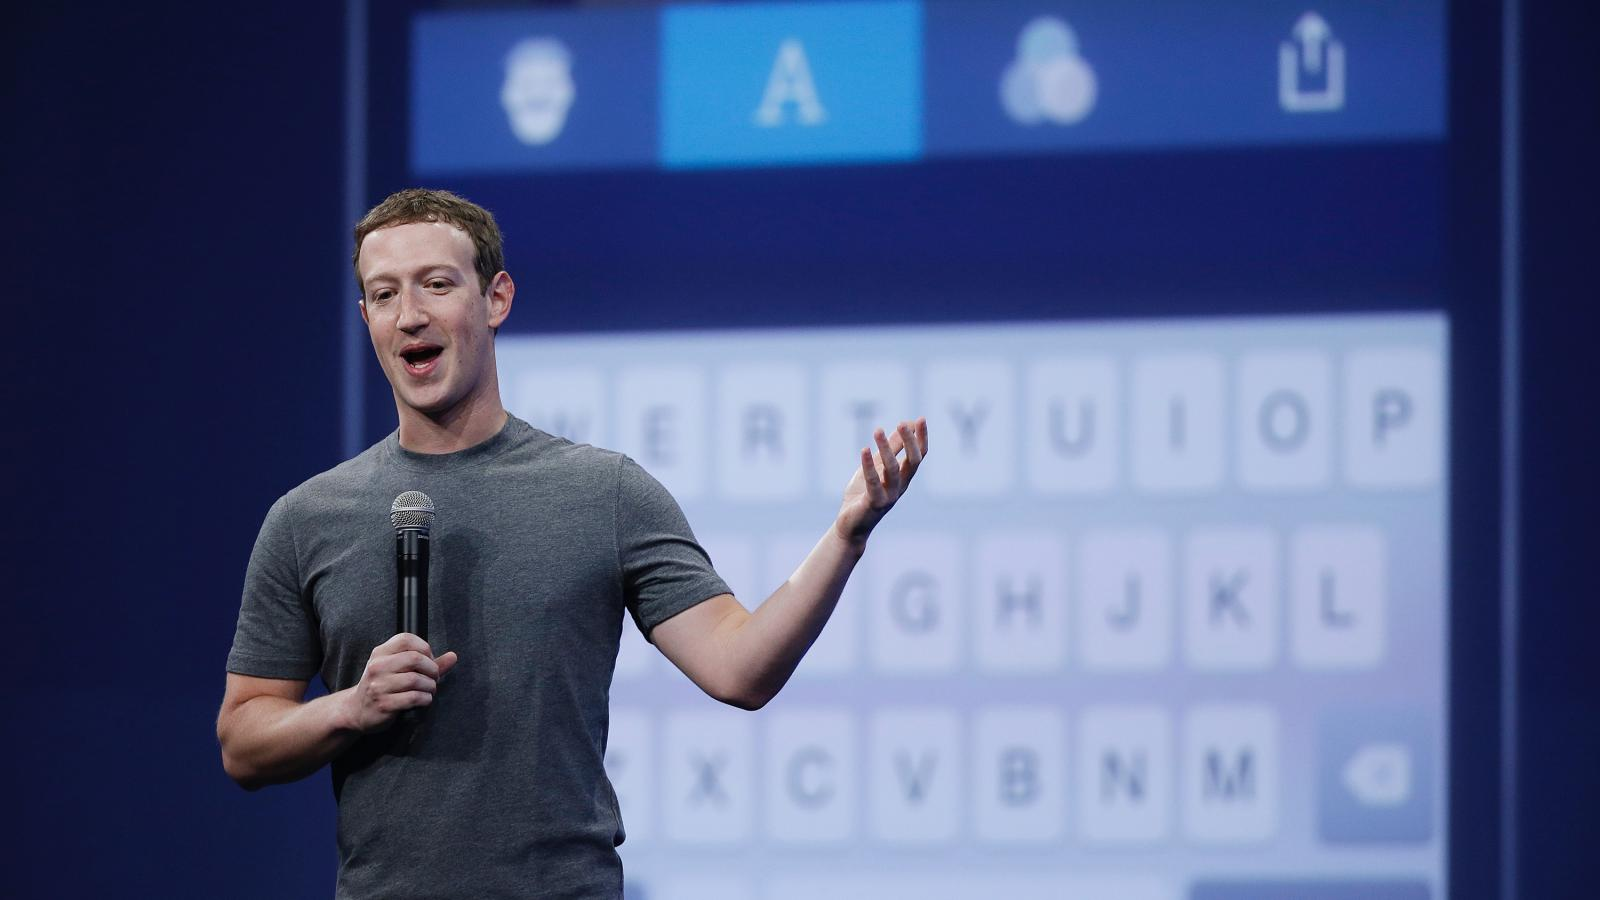 Facebook (FB) may be screening out messages you really want to see